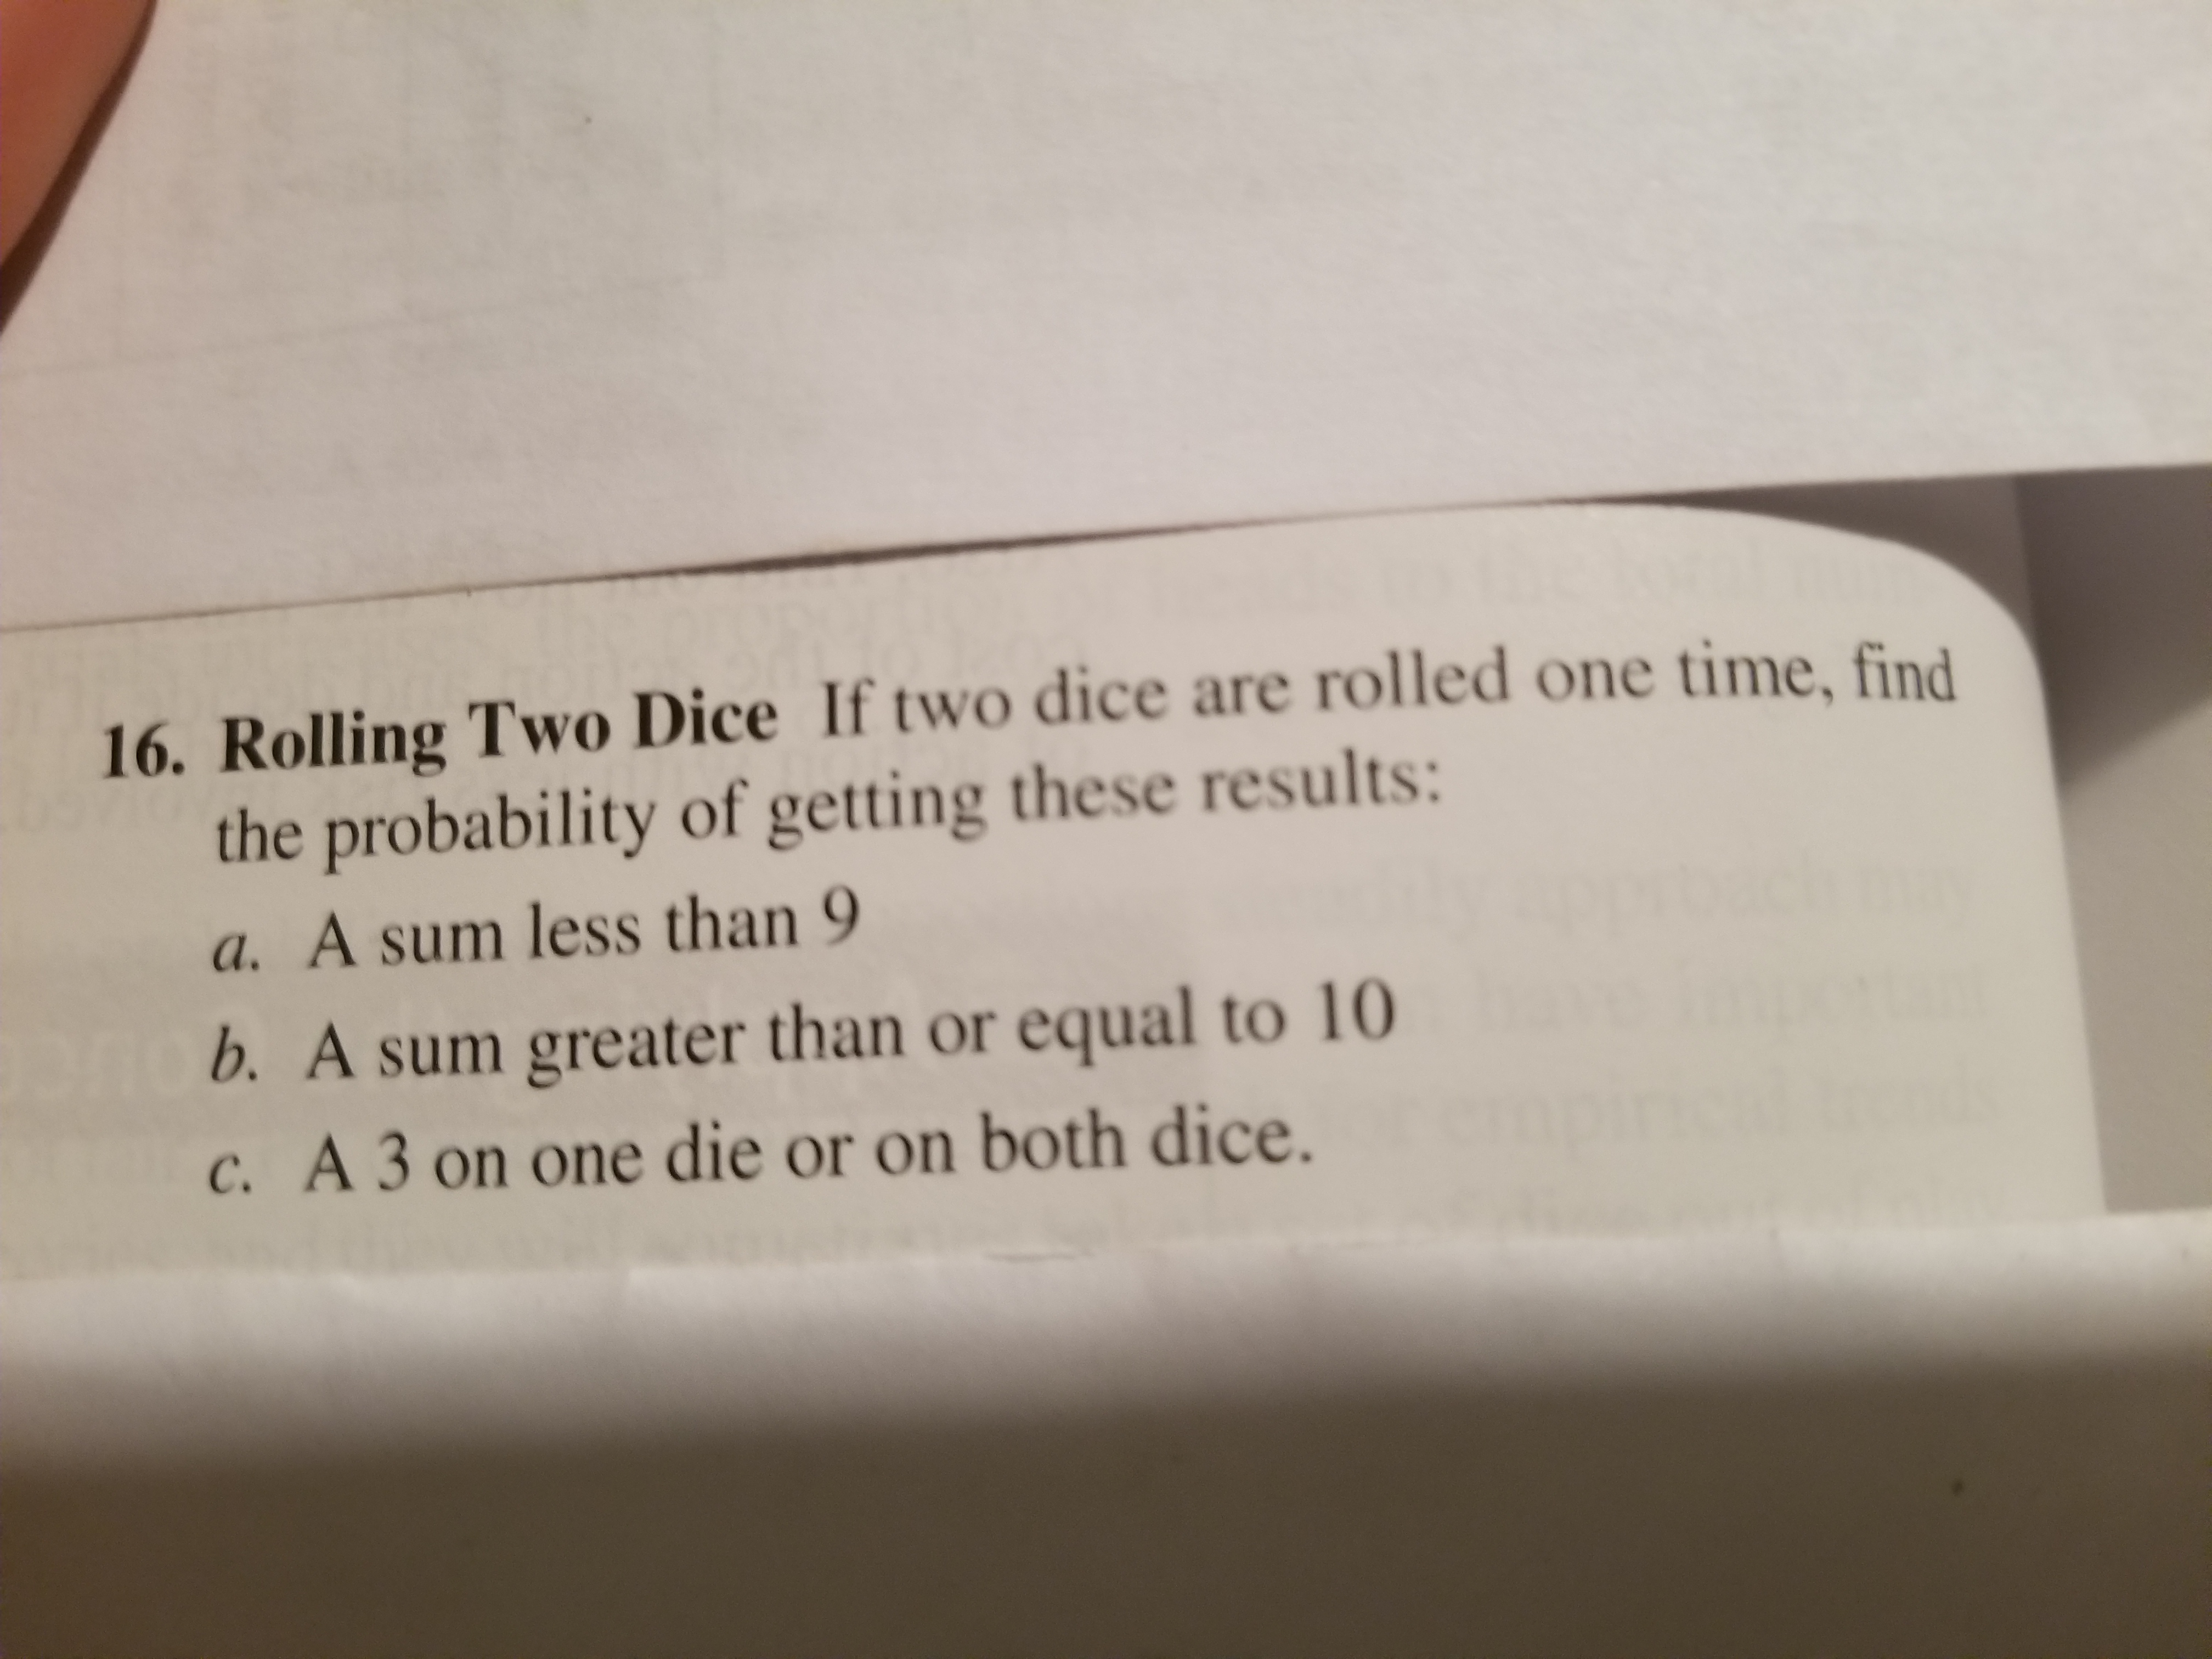 16. Rolling Two Dice If two dice are rolled one time, find the probability of getting these results: a. A sum less than 9 b. A sum greater than or equal to 10 c. A 3 on one die or on both dice.